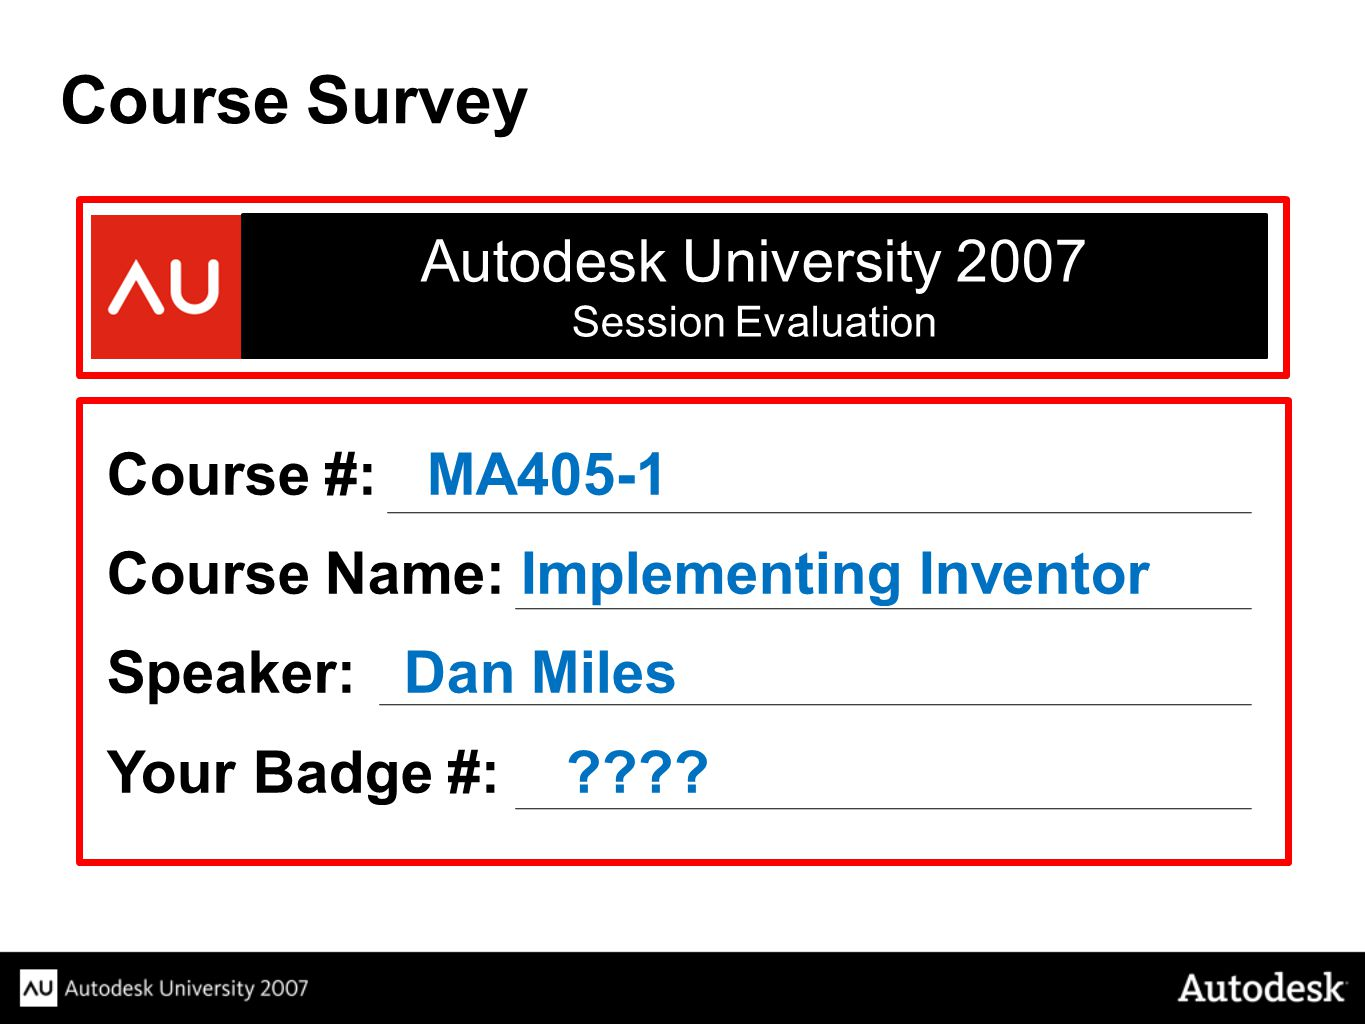 Course Survey Autodesk University 2007 Course #: MA405-1